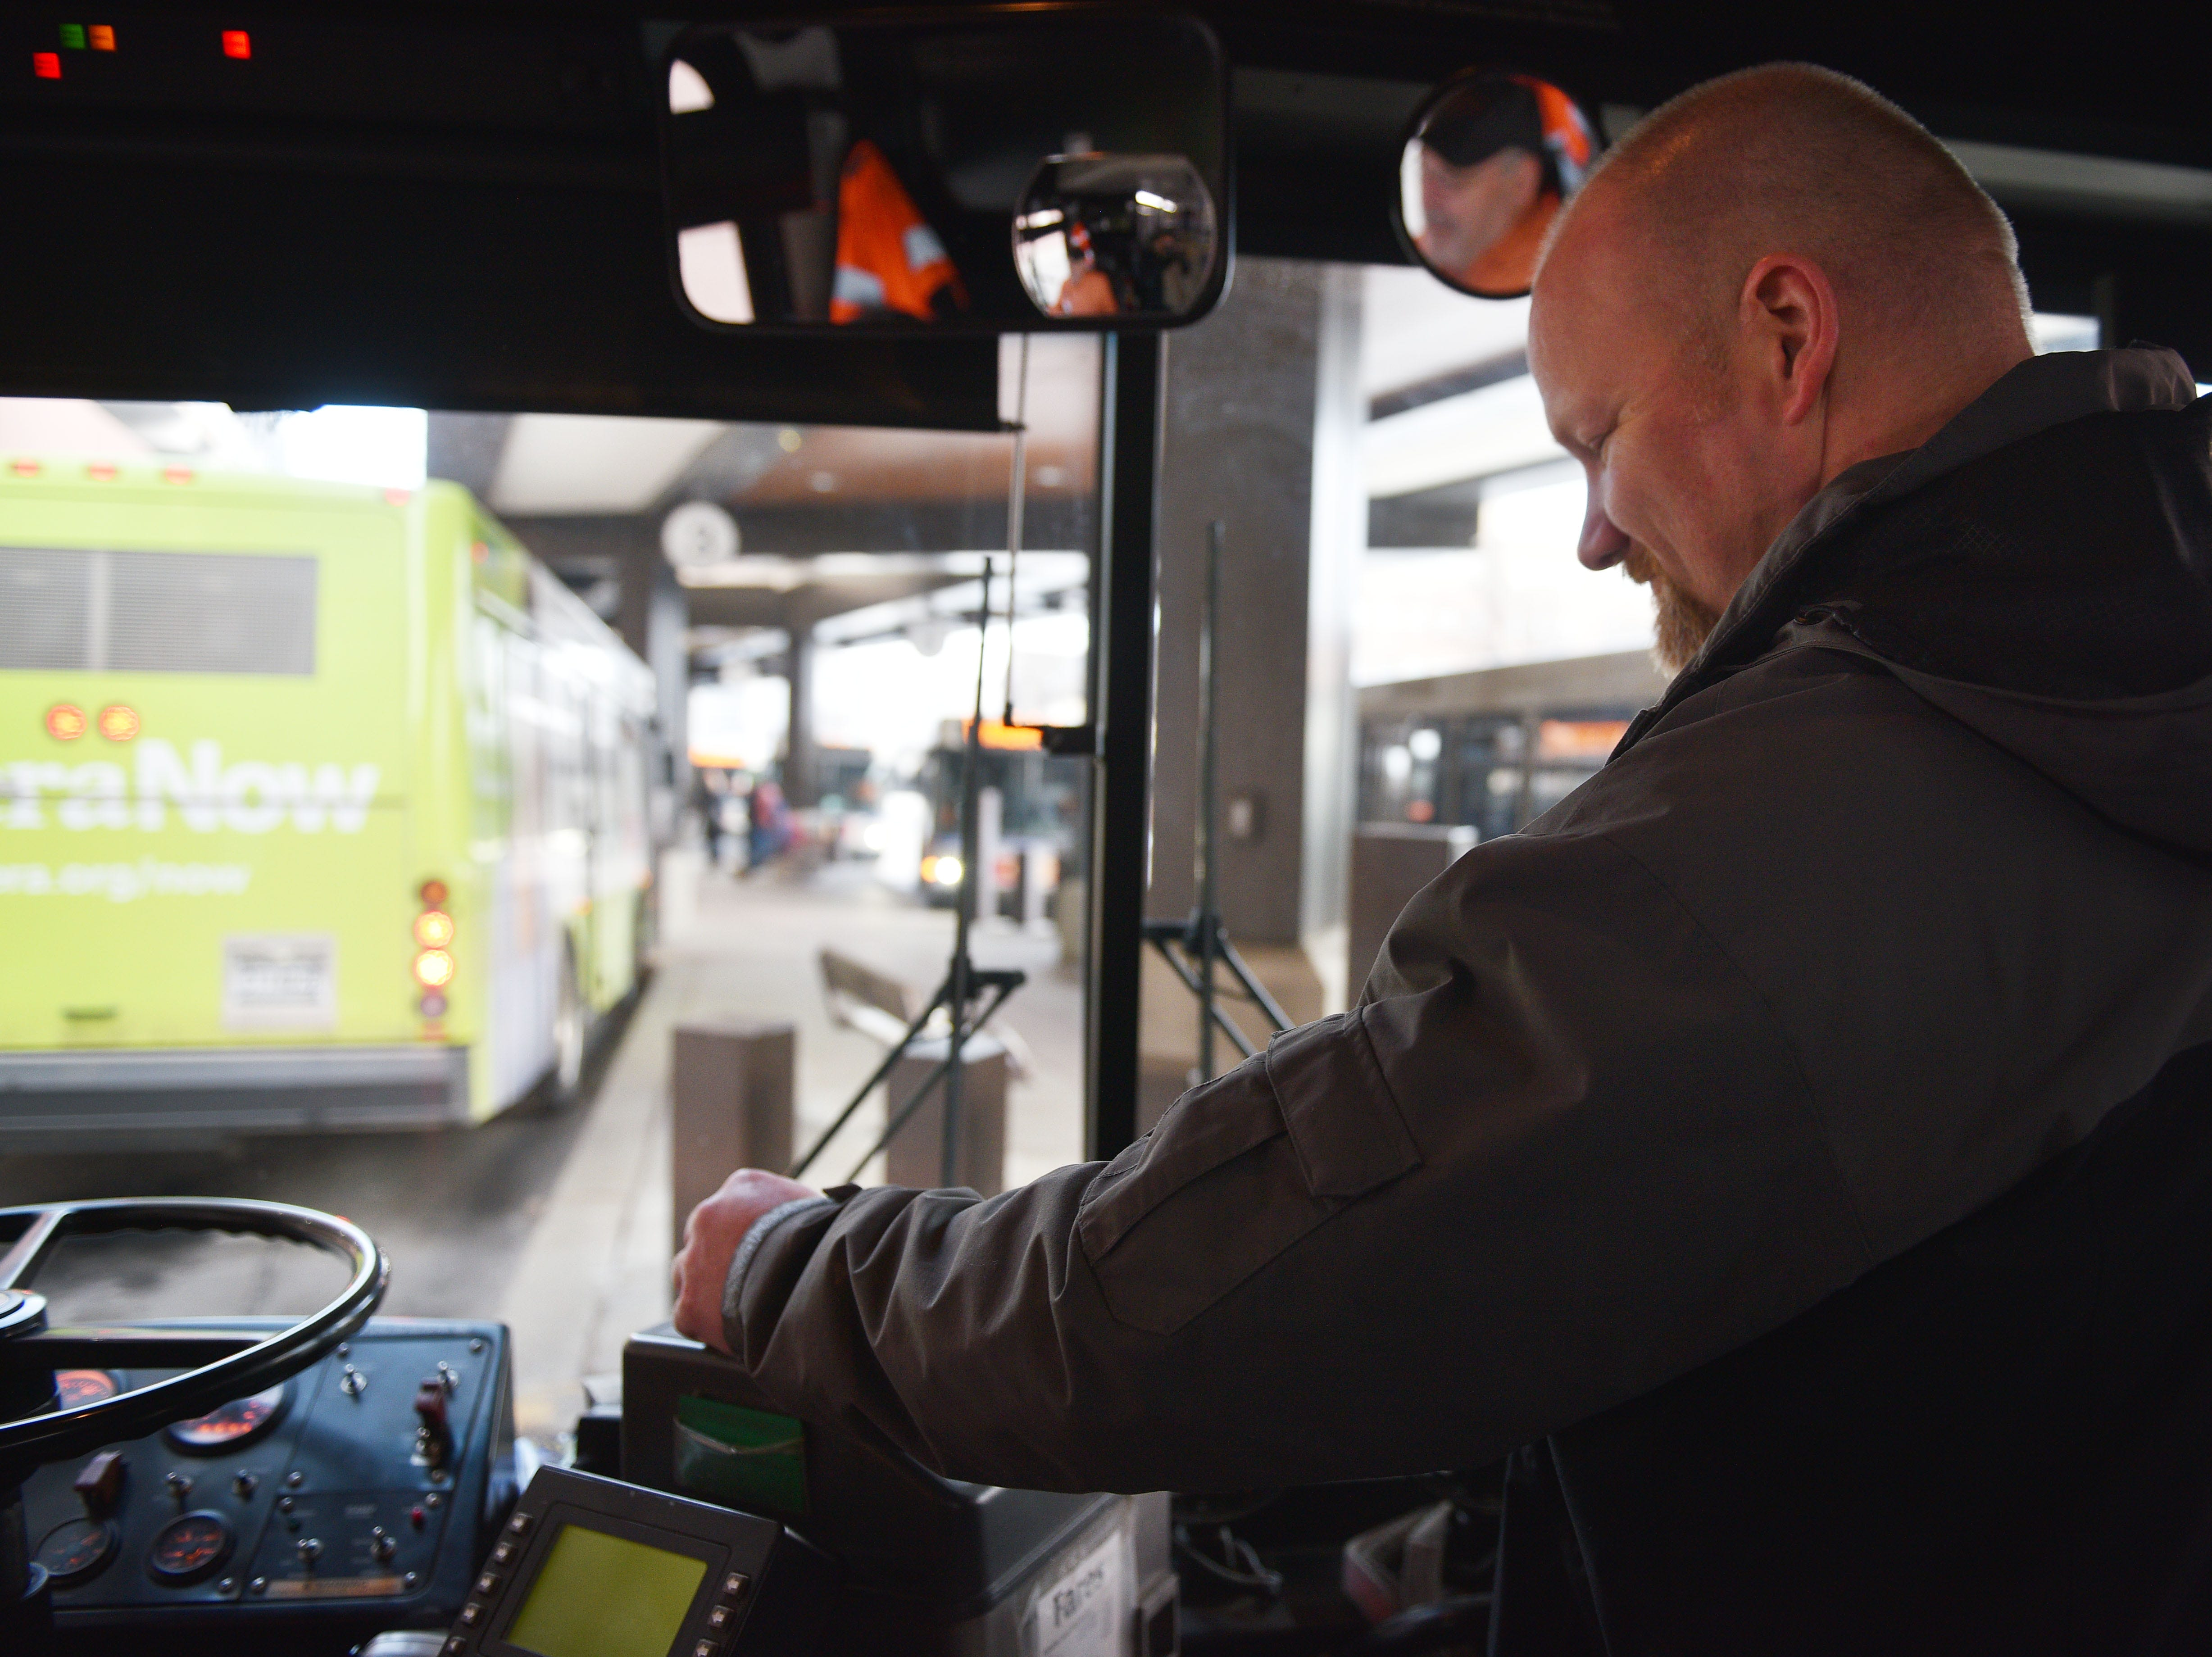 Traffic services Sergeant Kevin Henkel inserts his ticket to ride the public bus system Friday, Dec. 7, in Sioux Falls. Public transit costs taxpayers millions each year. That's why a task force has been set up to study the issue with assistance from staff at the Harvard Bloomberg Institute. A part of the task force's work is engaging bus riders and the general public, so members were at the bus depot at 9 a.m. Friday to talk to riders and ride the buses.